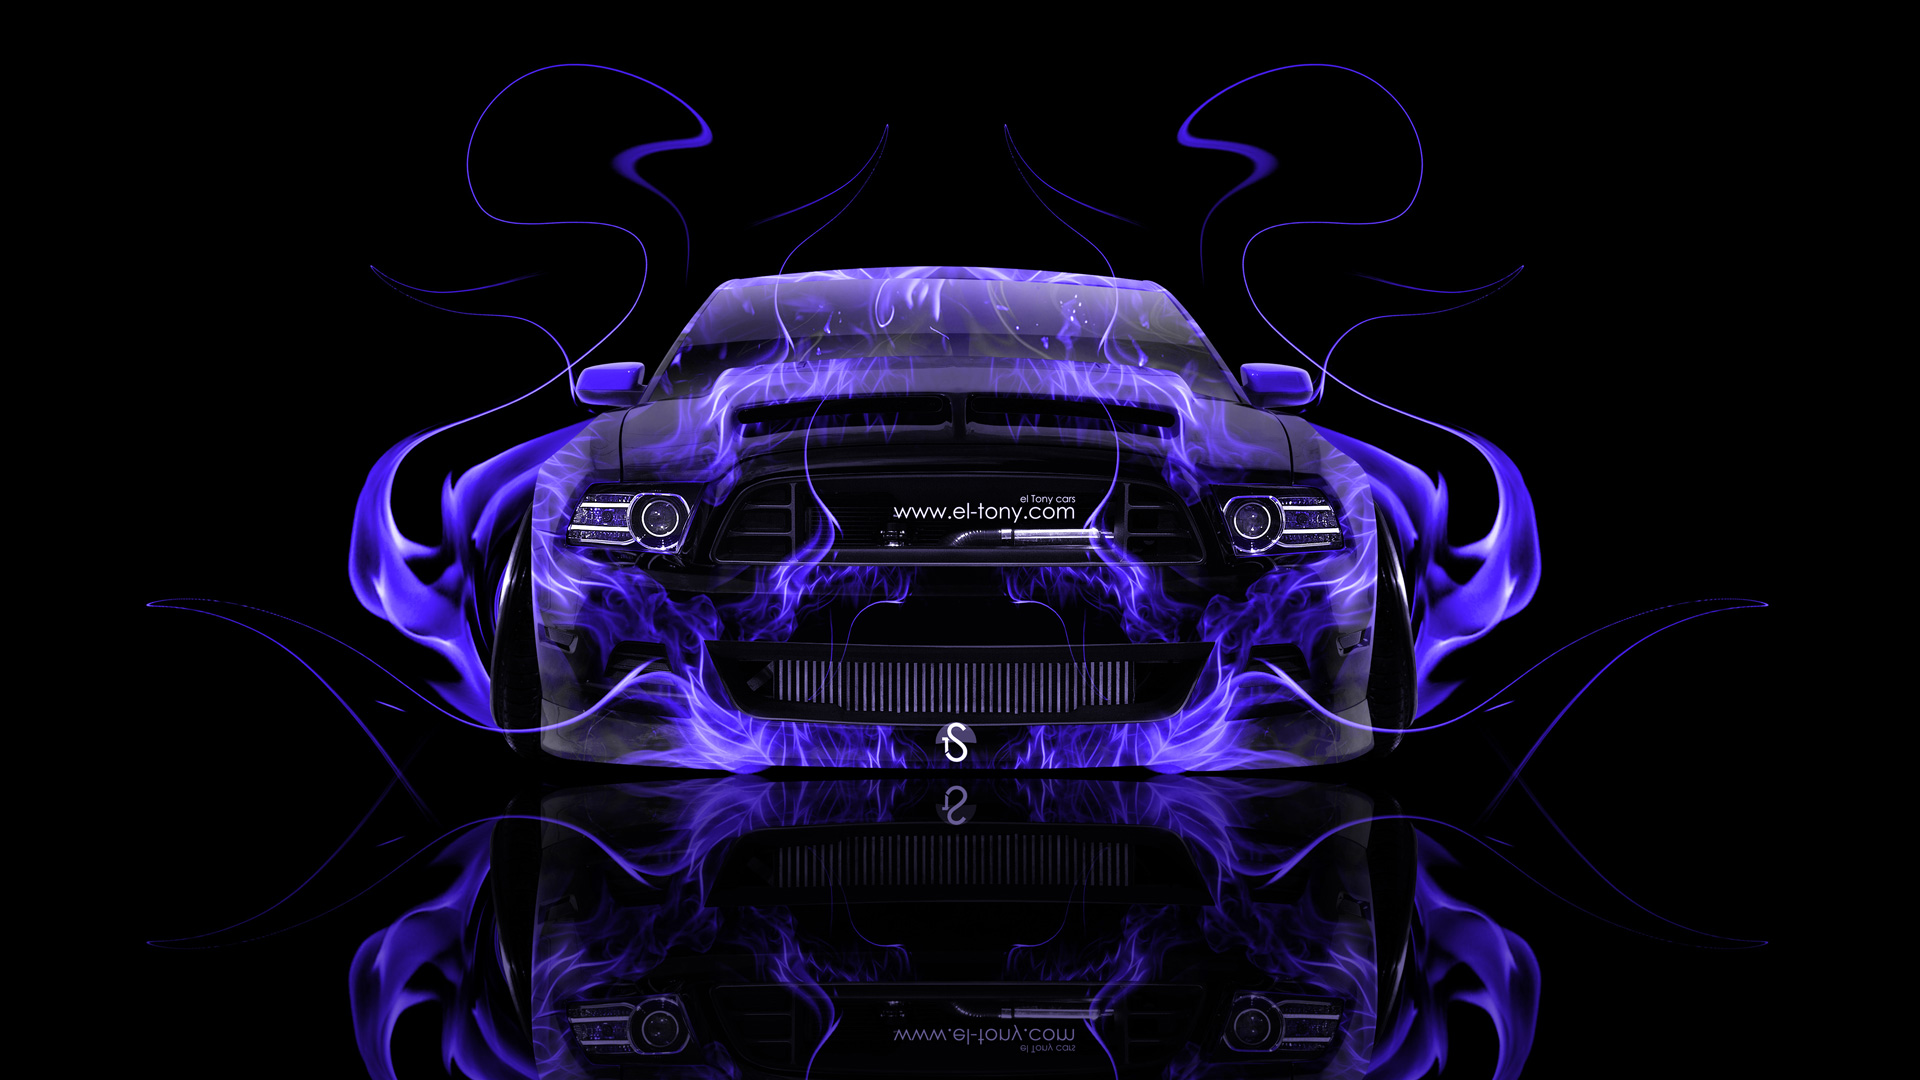 GT Muscle Front Violet Fire Abstract Car 2014 Art HD Wallpapers 1920x1080